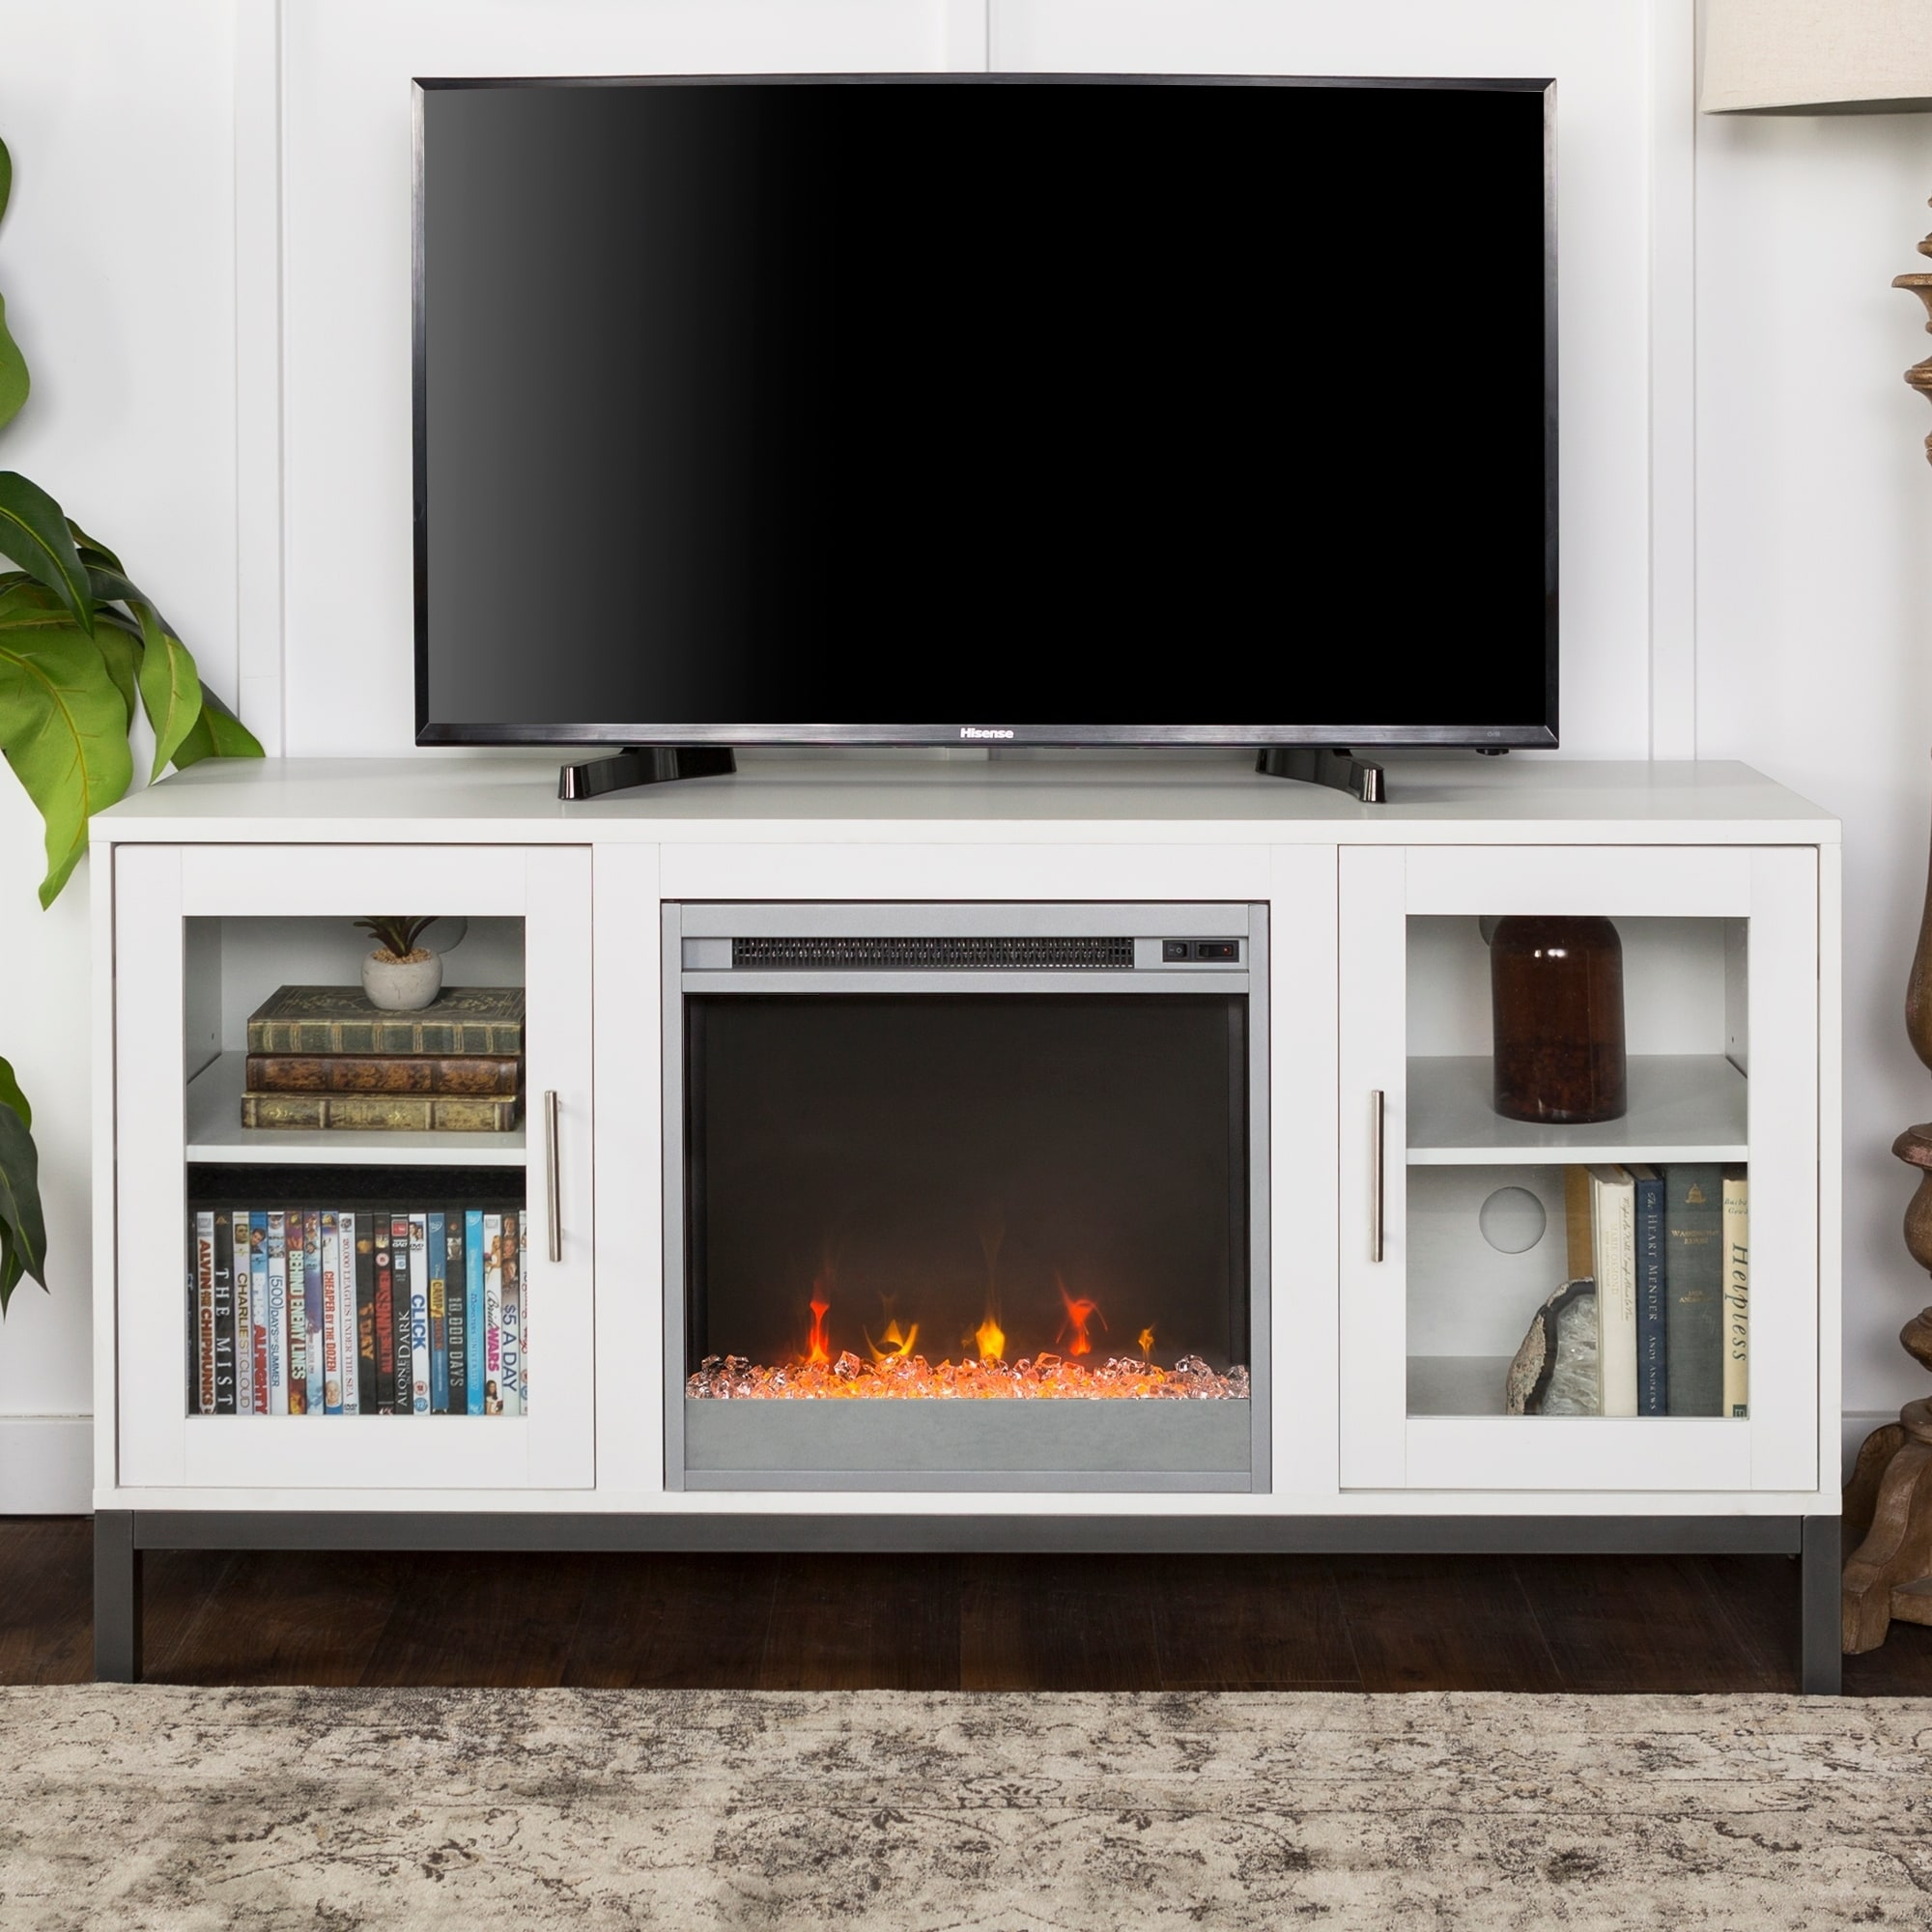 52 Fireplace Tv Stand Console With Metal Base 52 X 16 X 26h